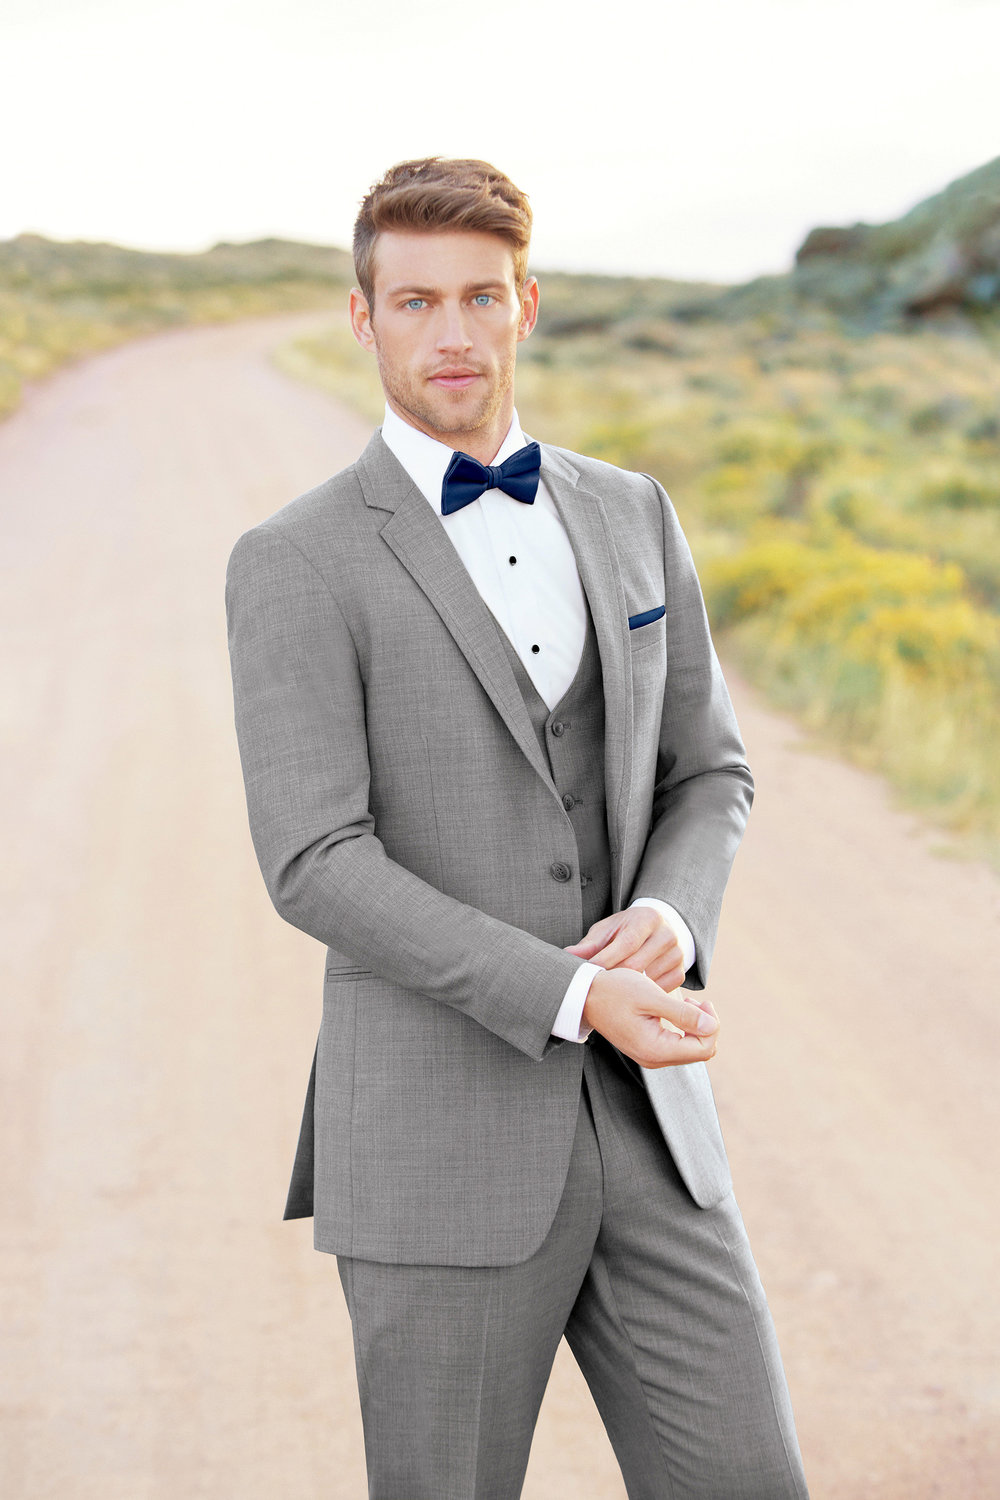 Slim Grey Suit | available at Bride To Be Couture | 6040 Fair Oaks Blvd. Carmichael, CA 95608 | 916.972.8223 | @bridetobecouture